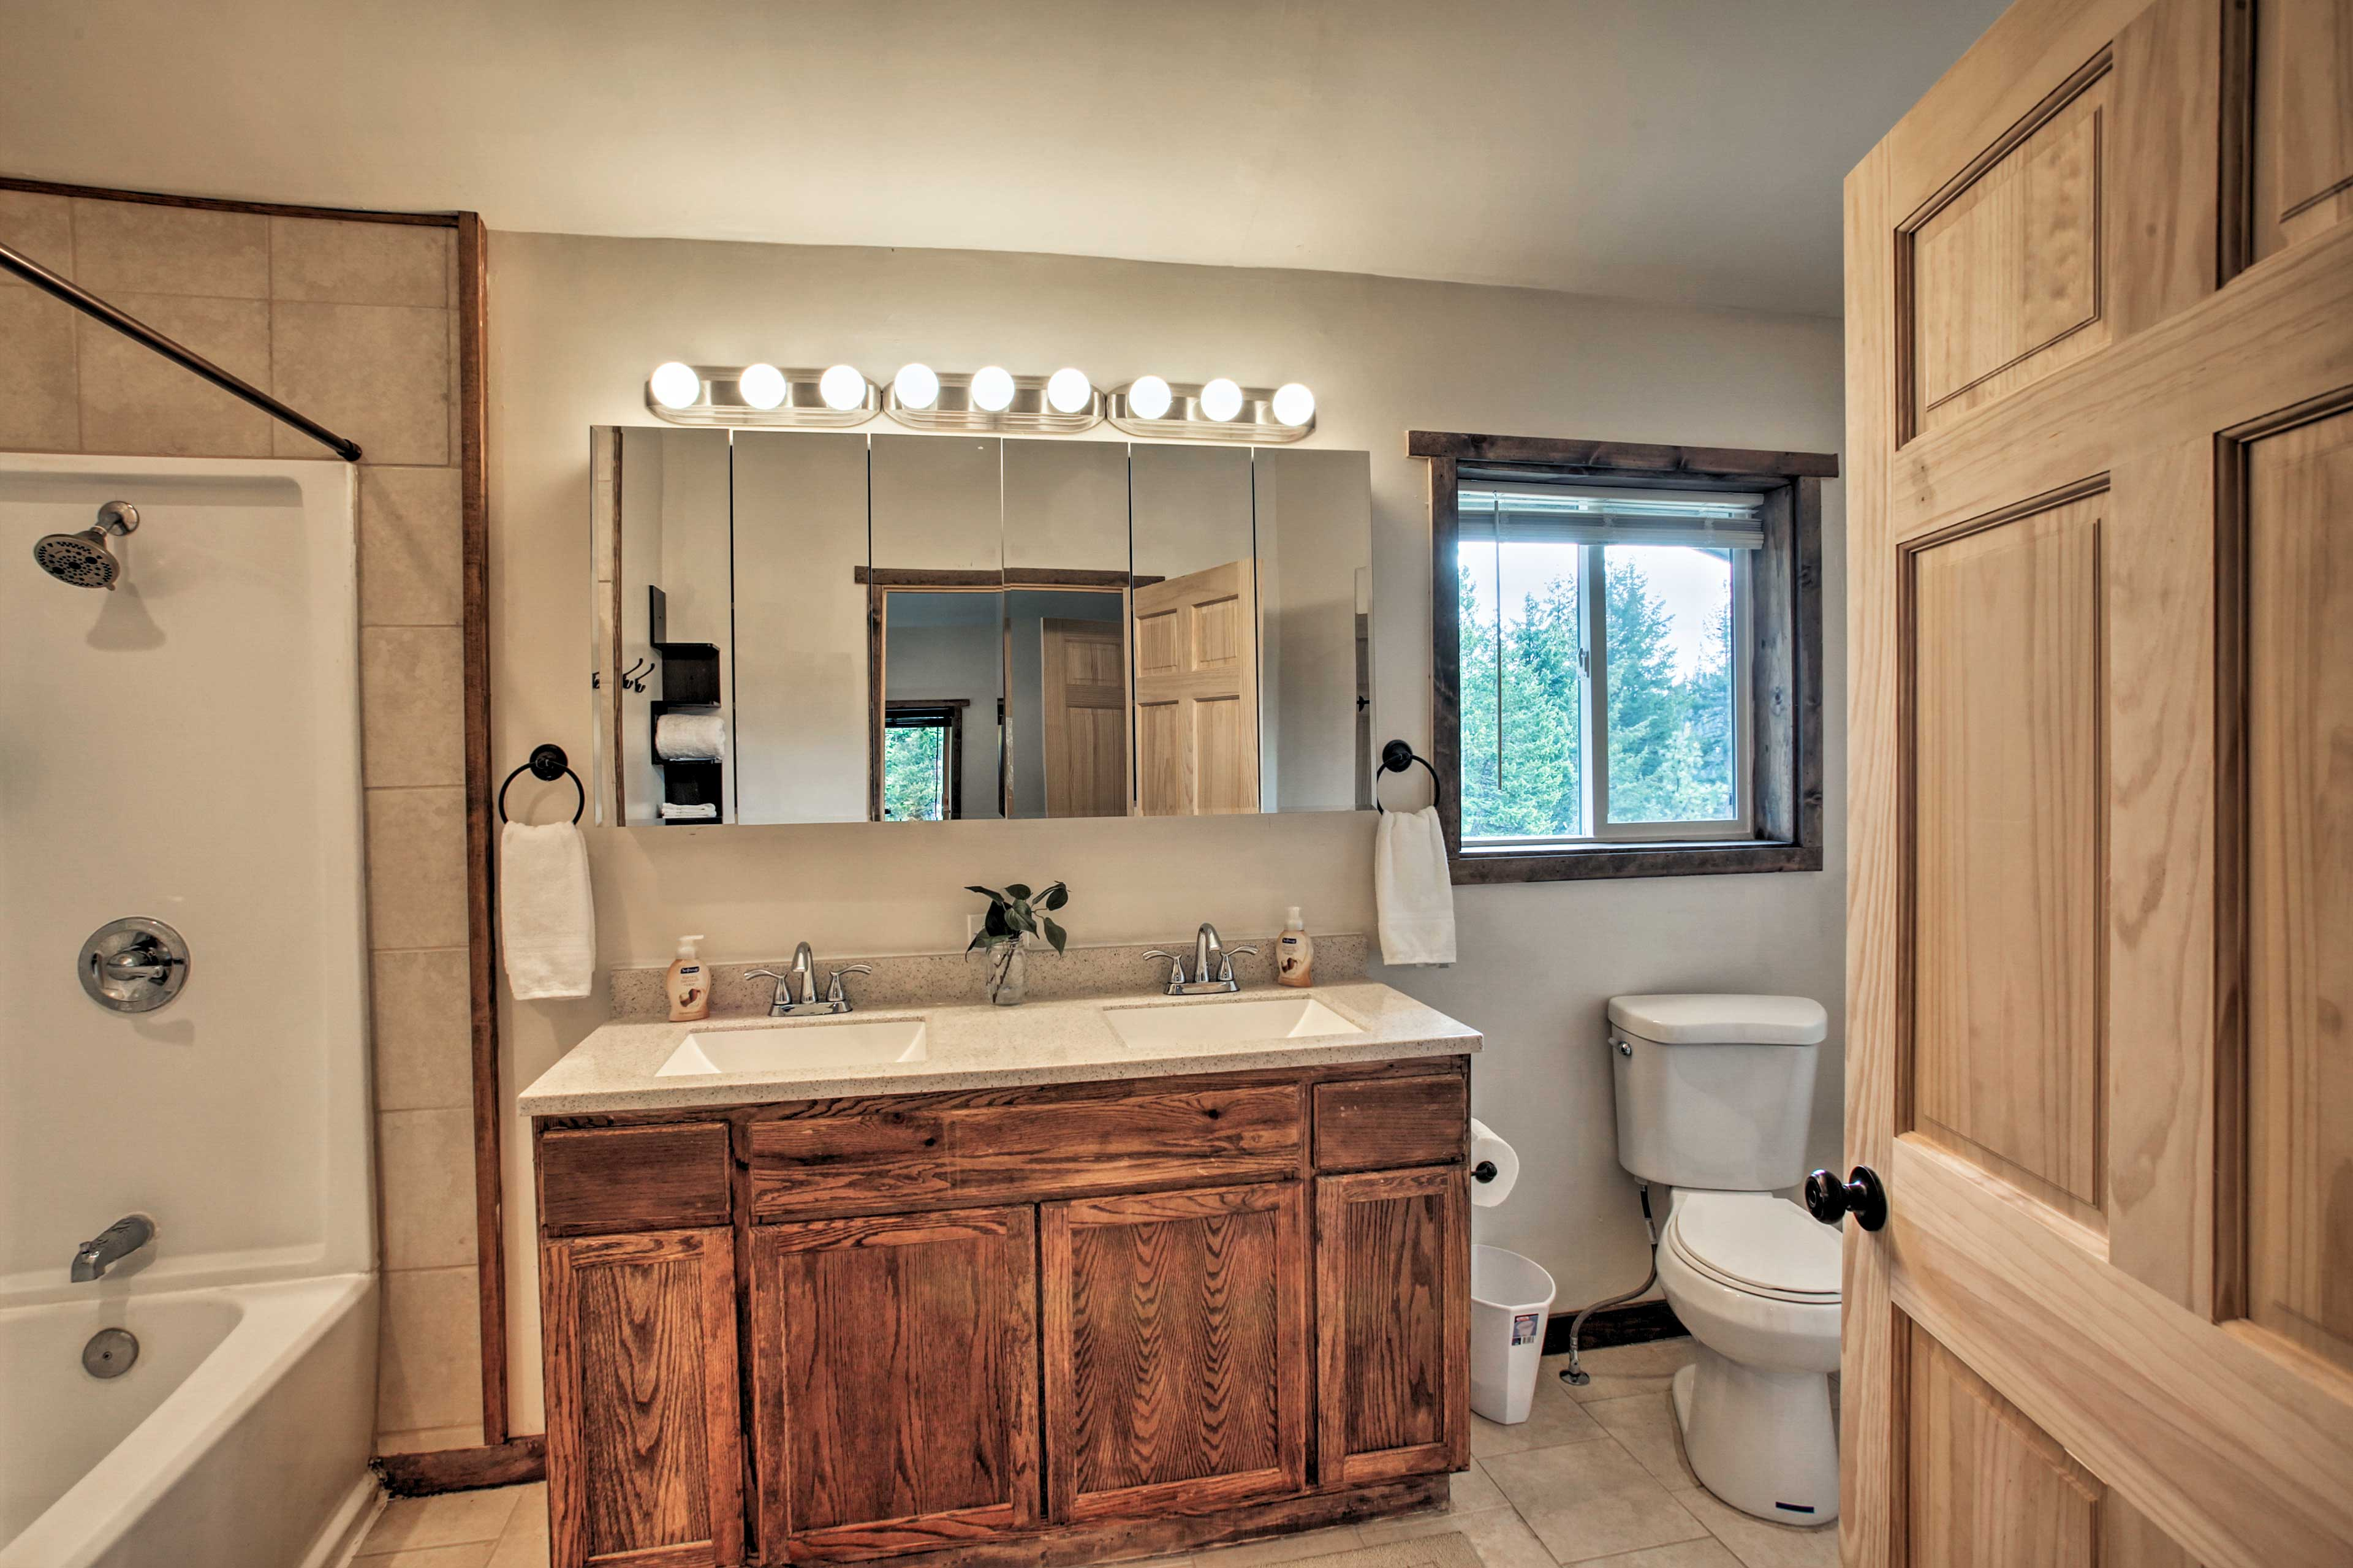 The double vanity makes it easy to get ready each day.